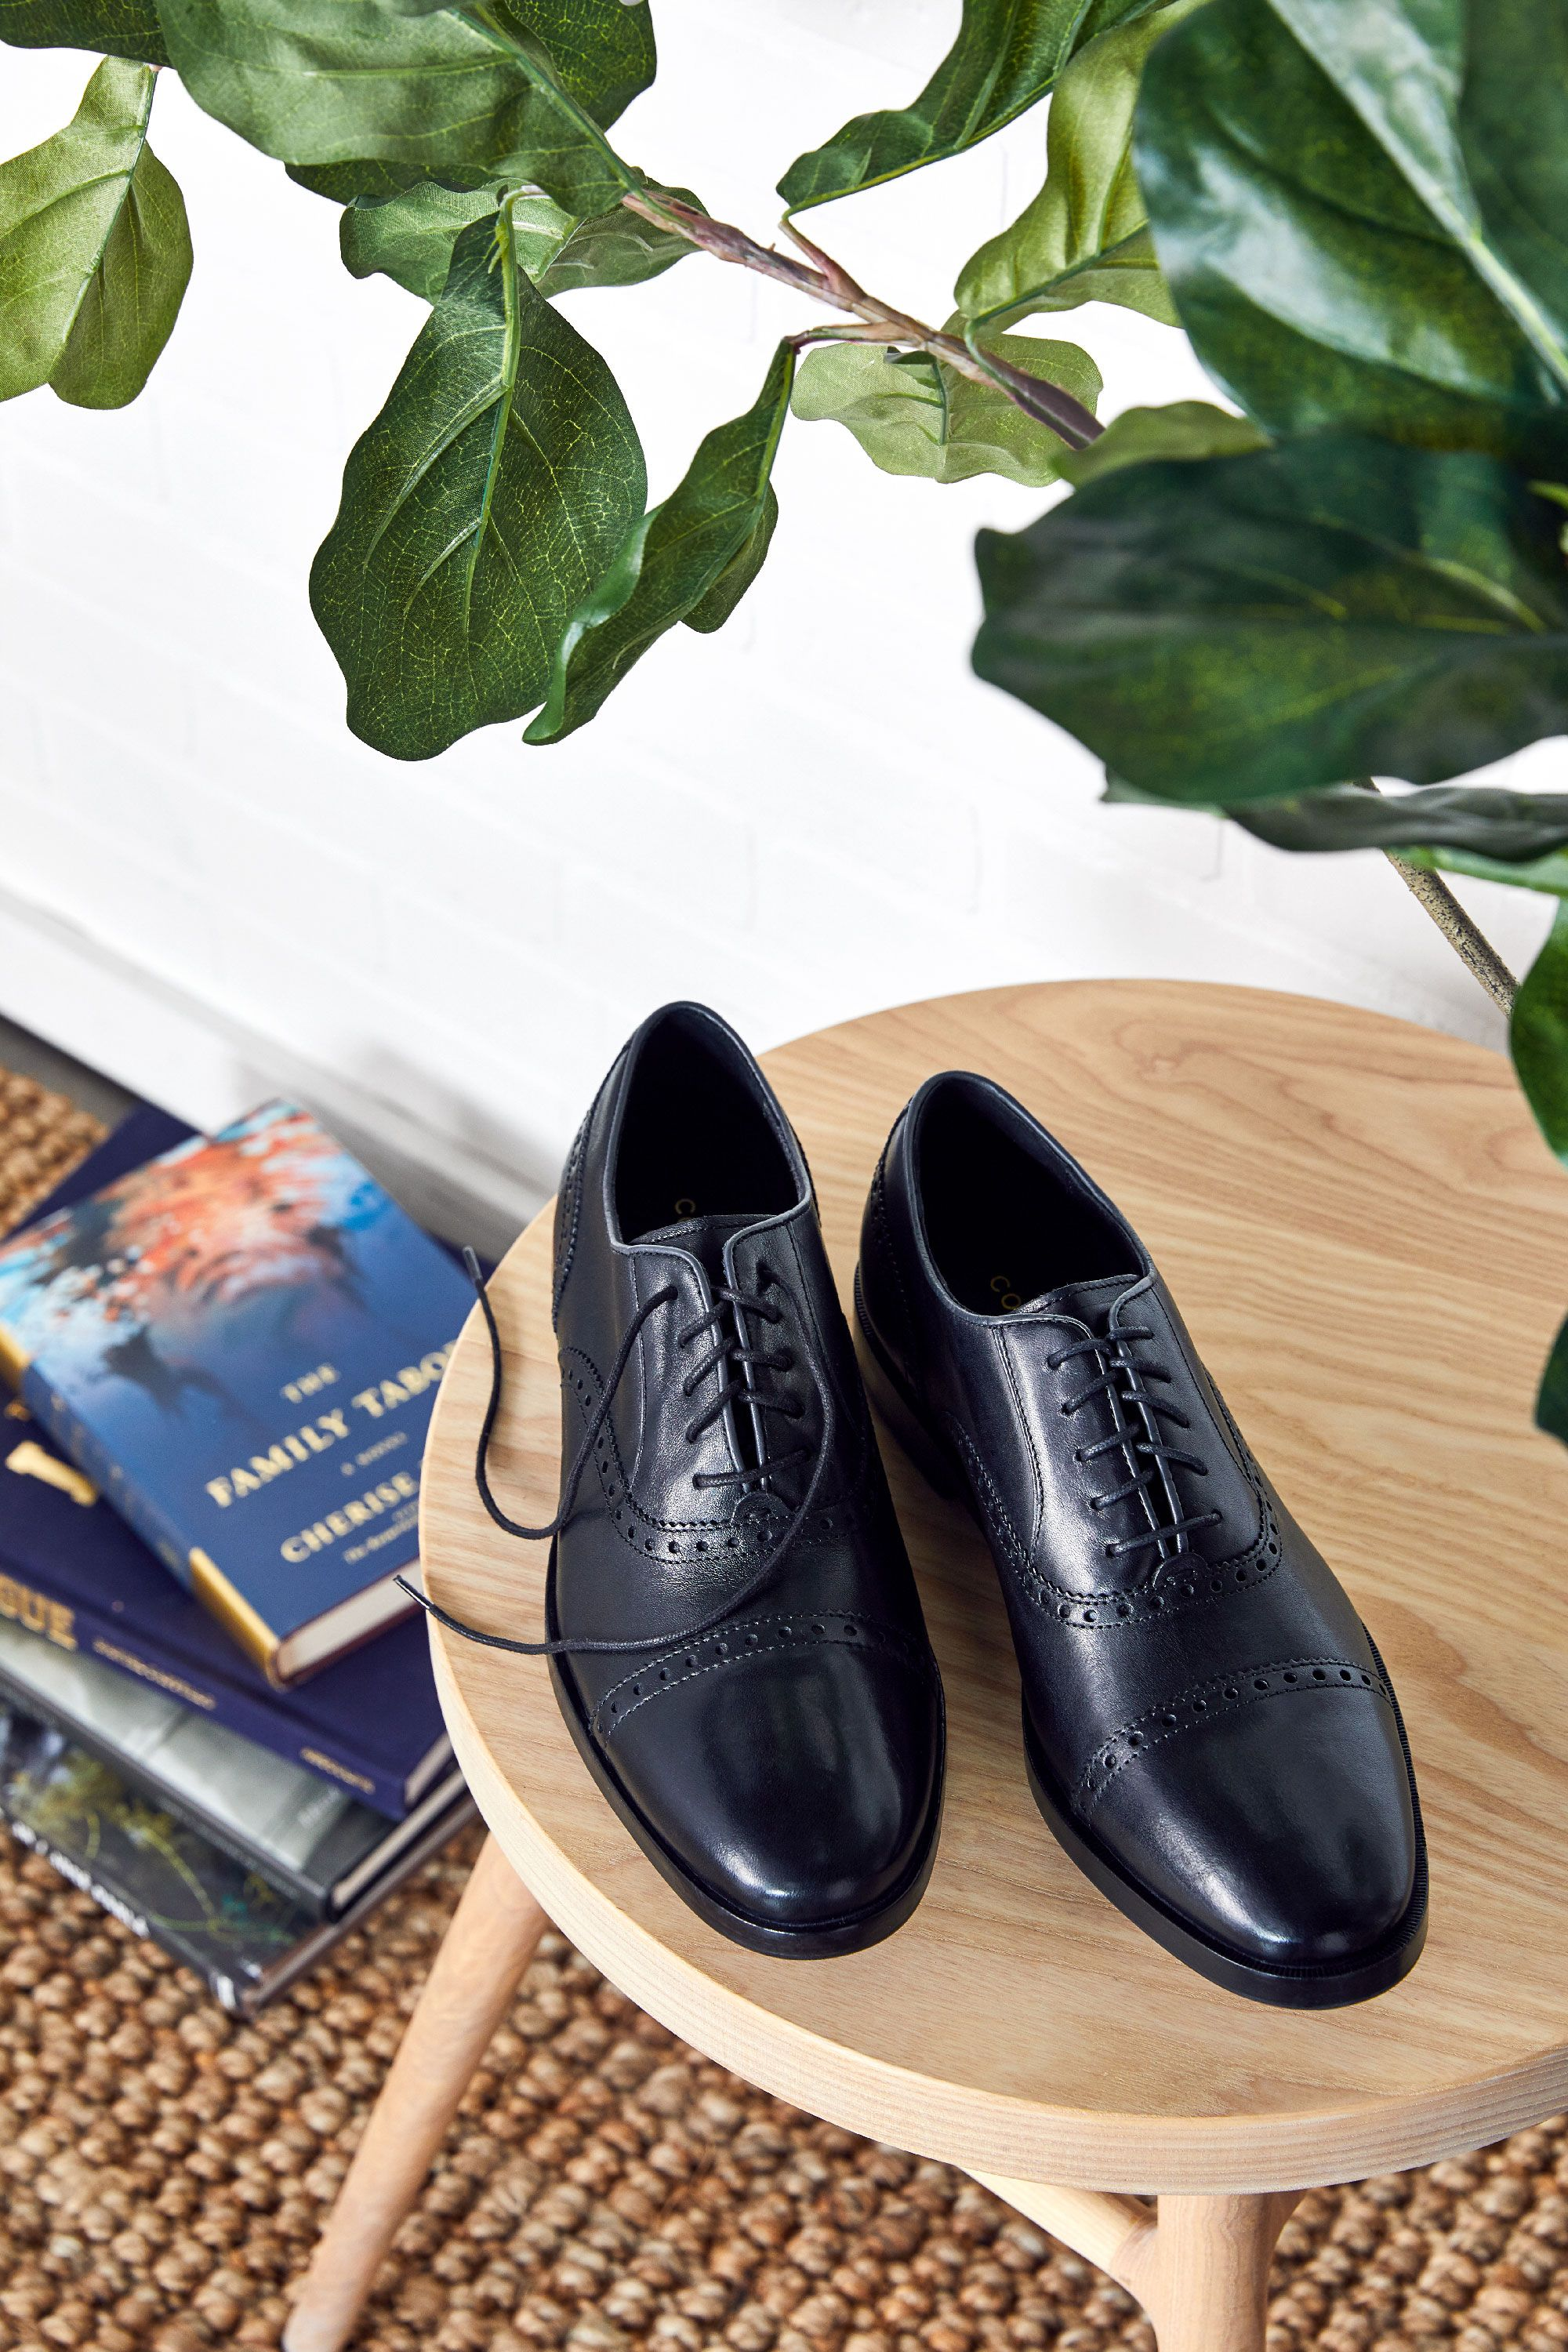 The Essential Dress Shoes That Are as Comfortable as Sneakers